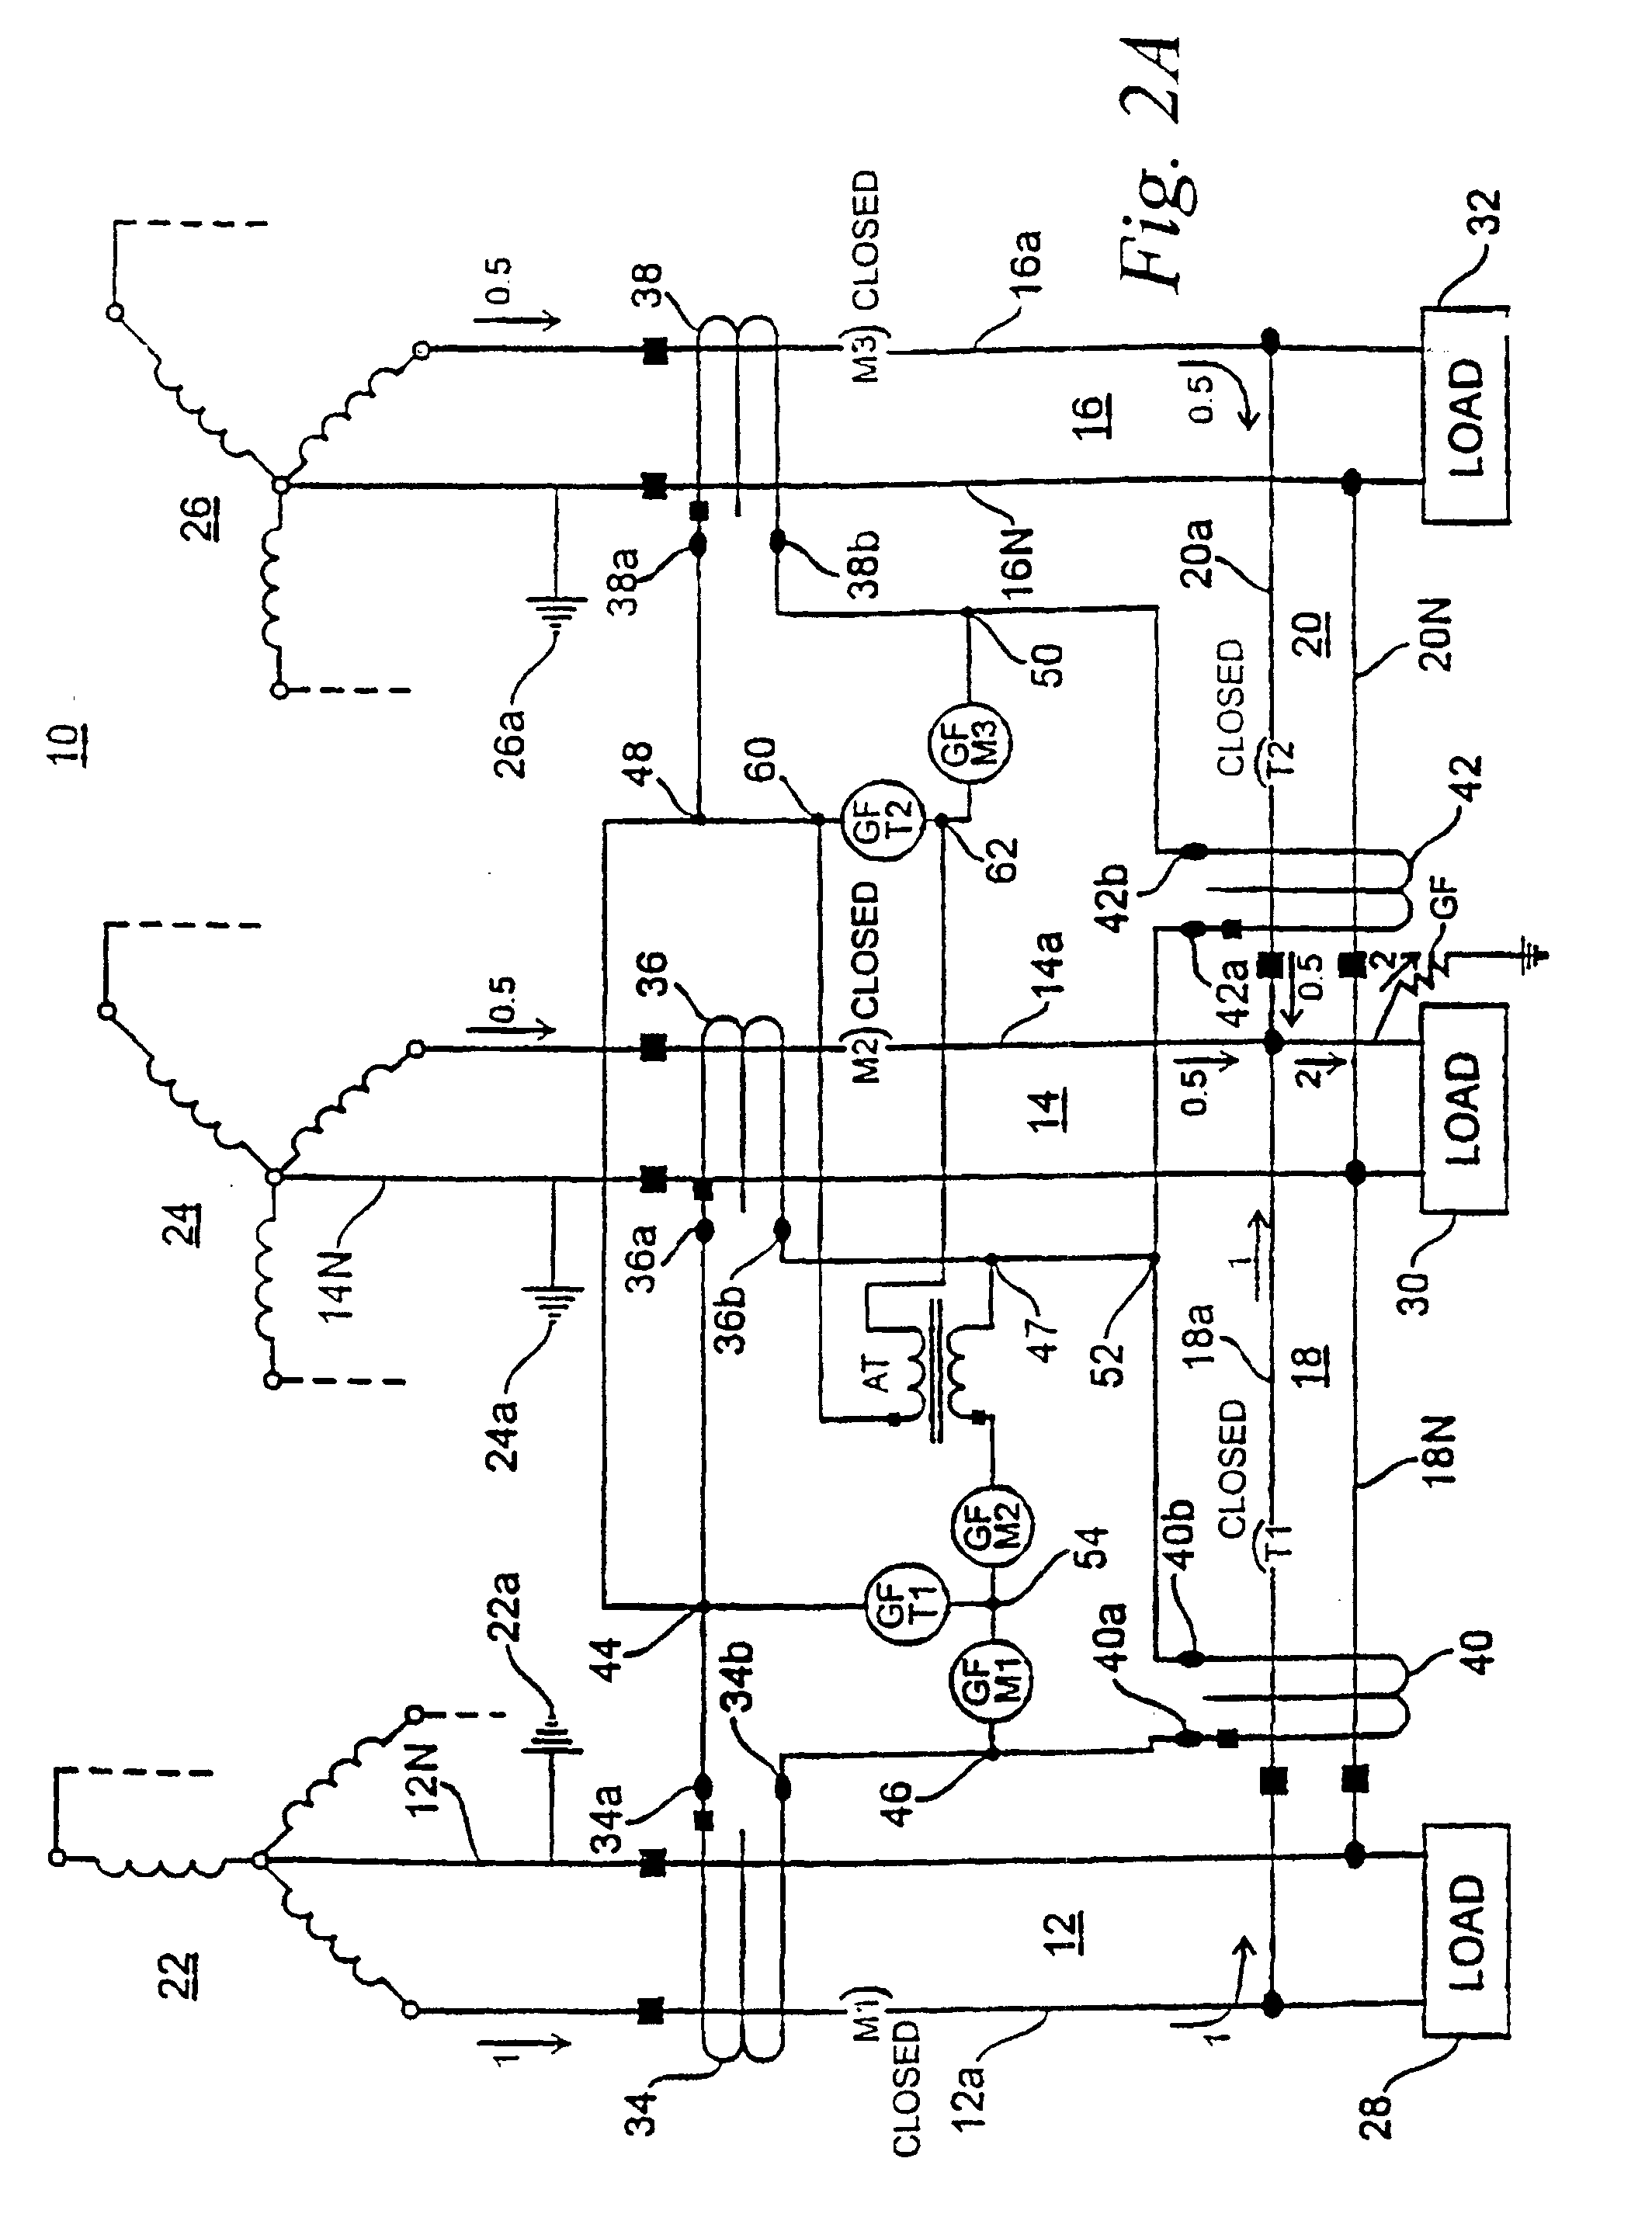 Ground Fault Breaker Schematic